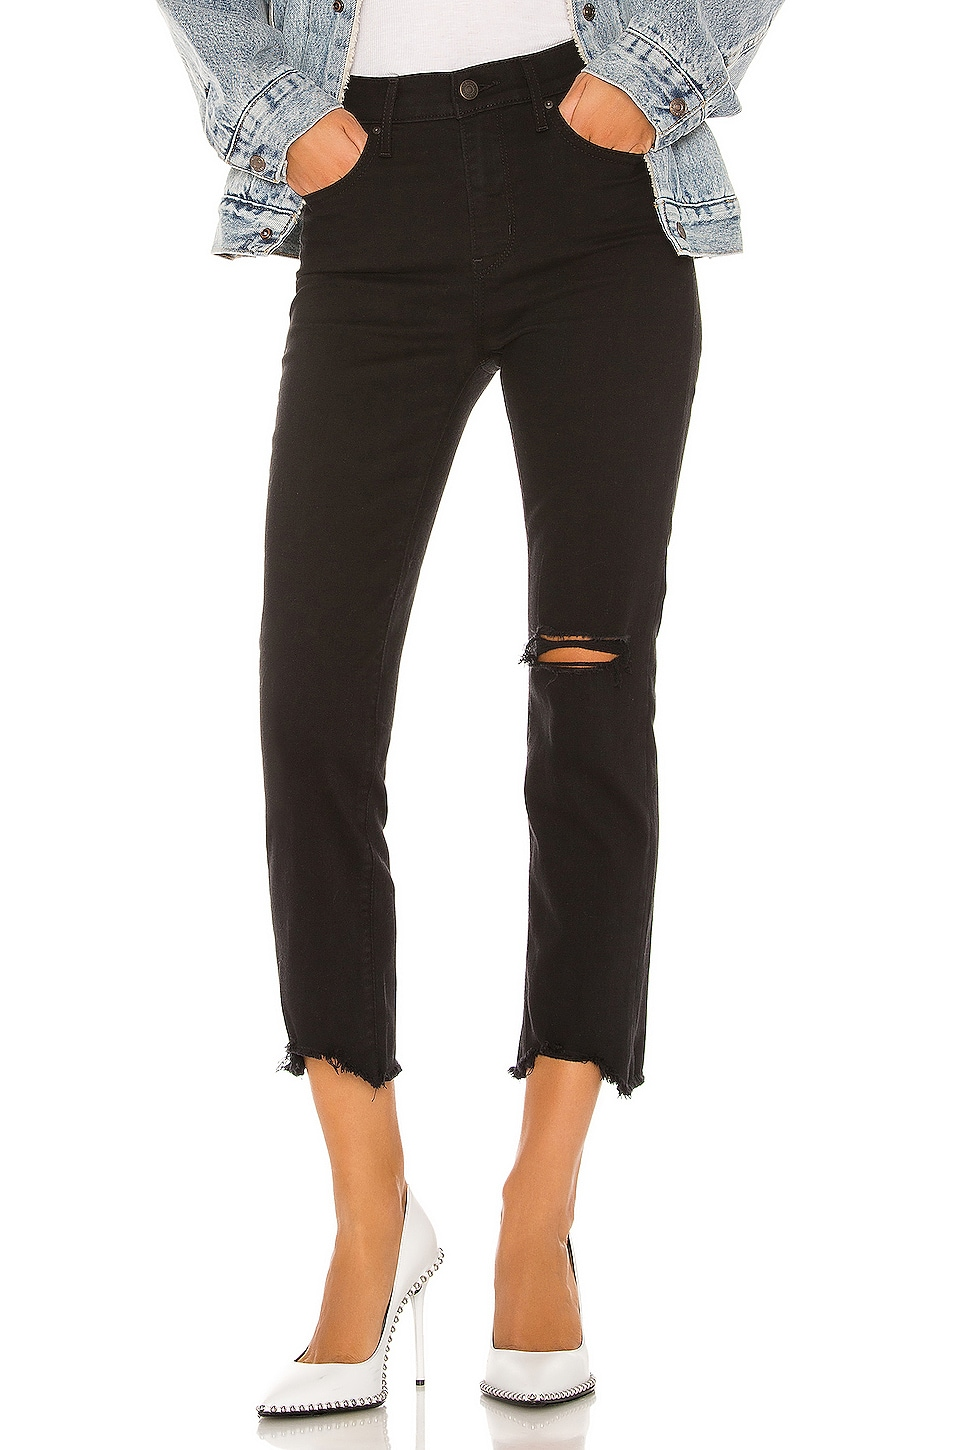 LEVI'S 724 High Rise Straight Crop in Black Pixel